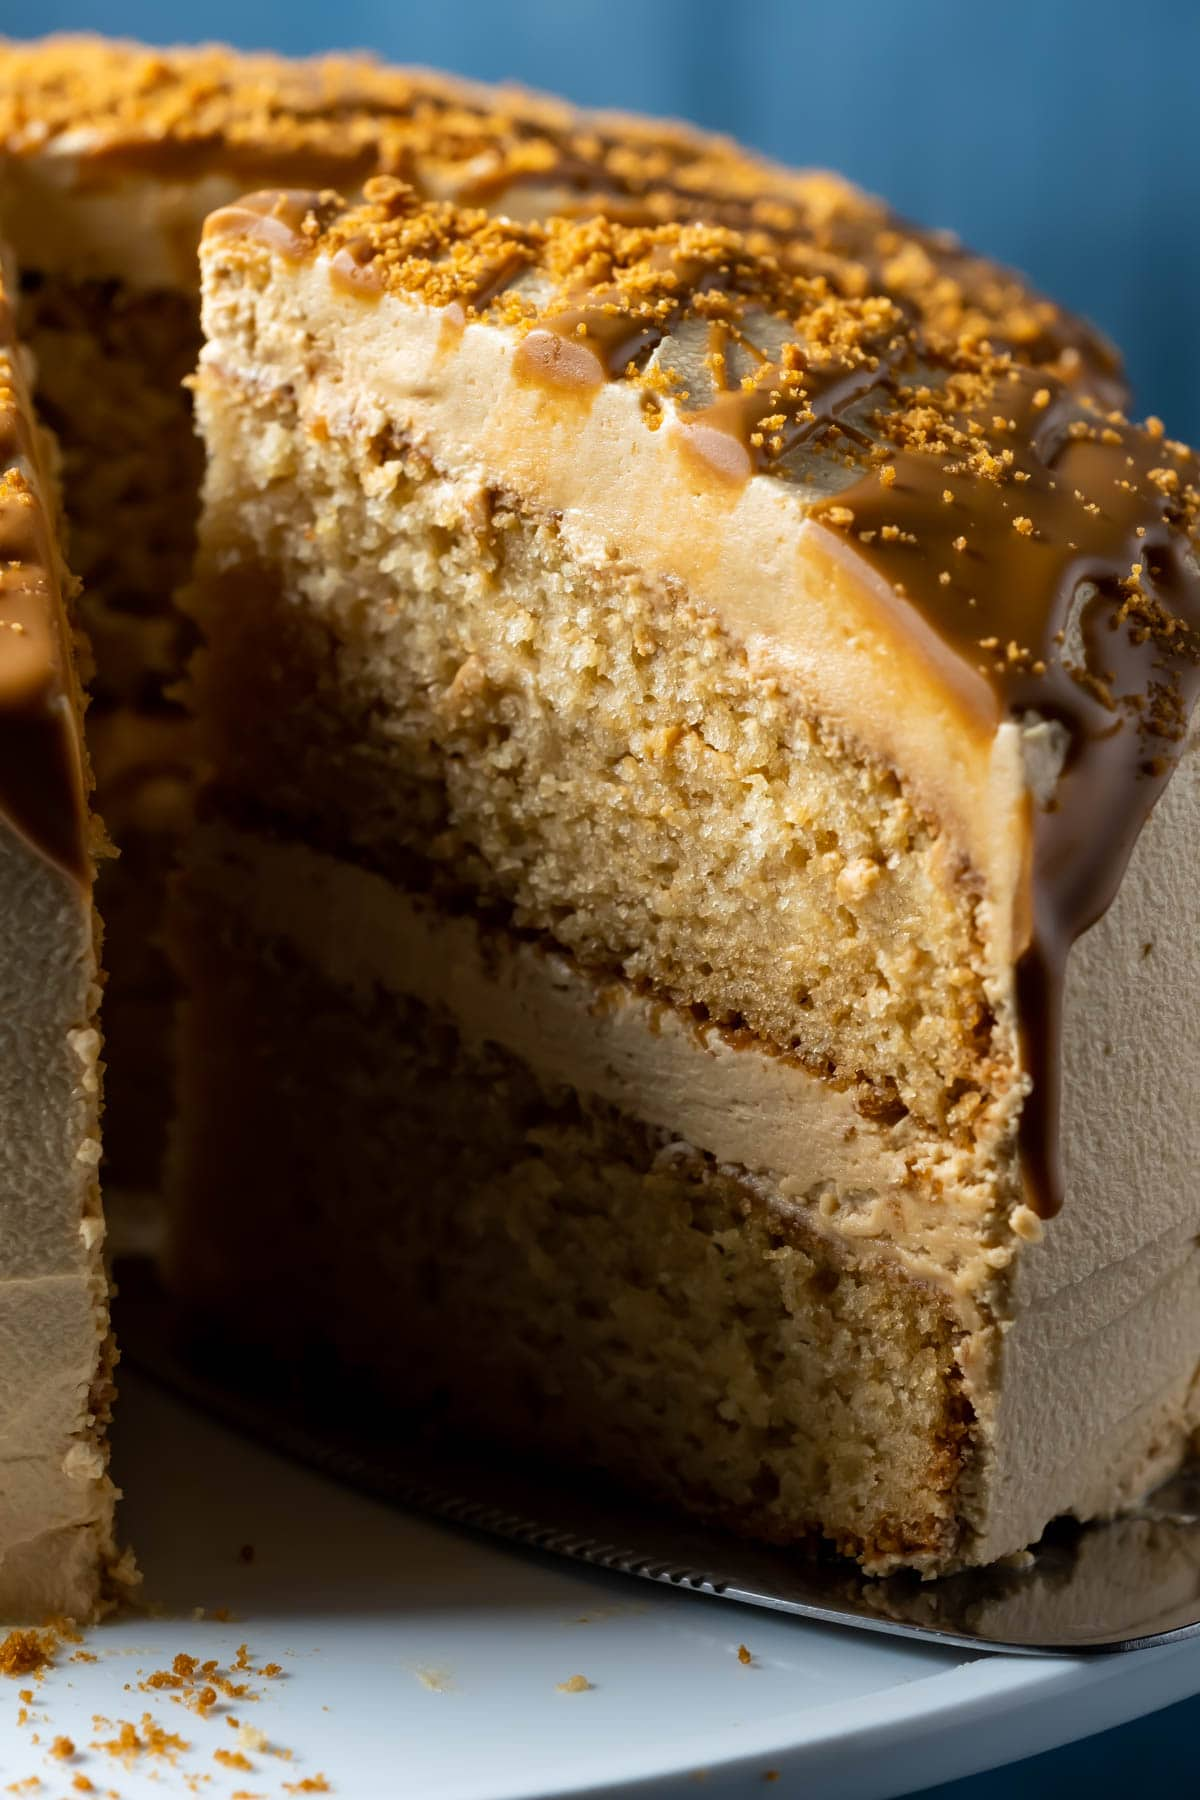 Biscoff cake on a white cake stand with one slice cut and ready to serve.